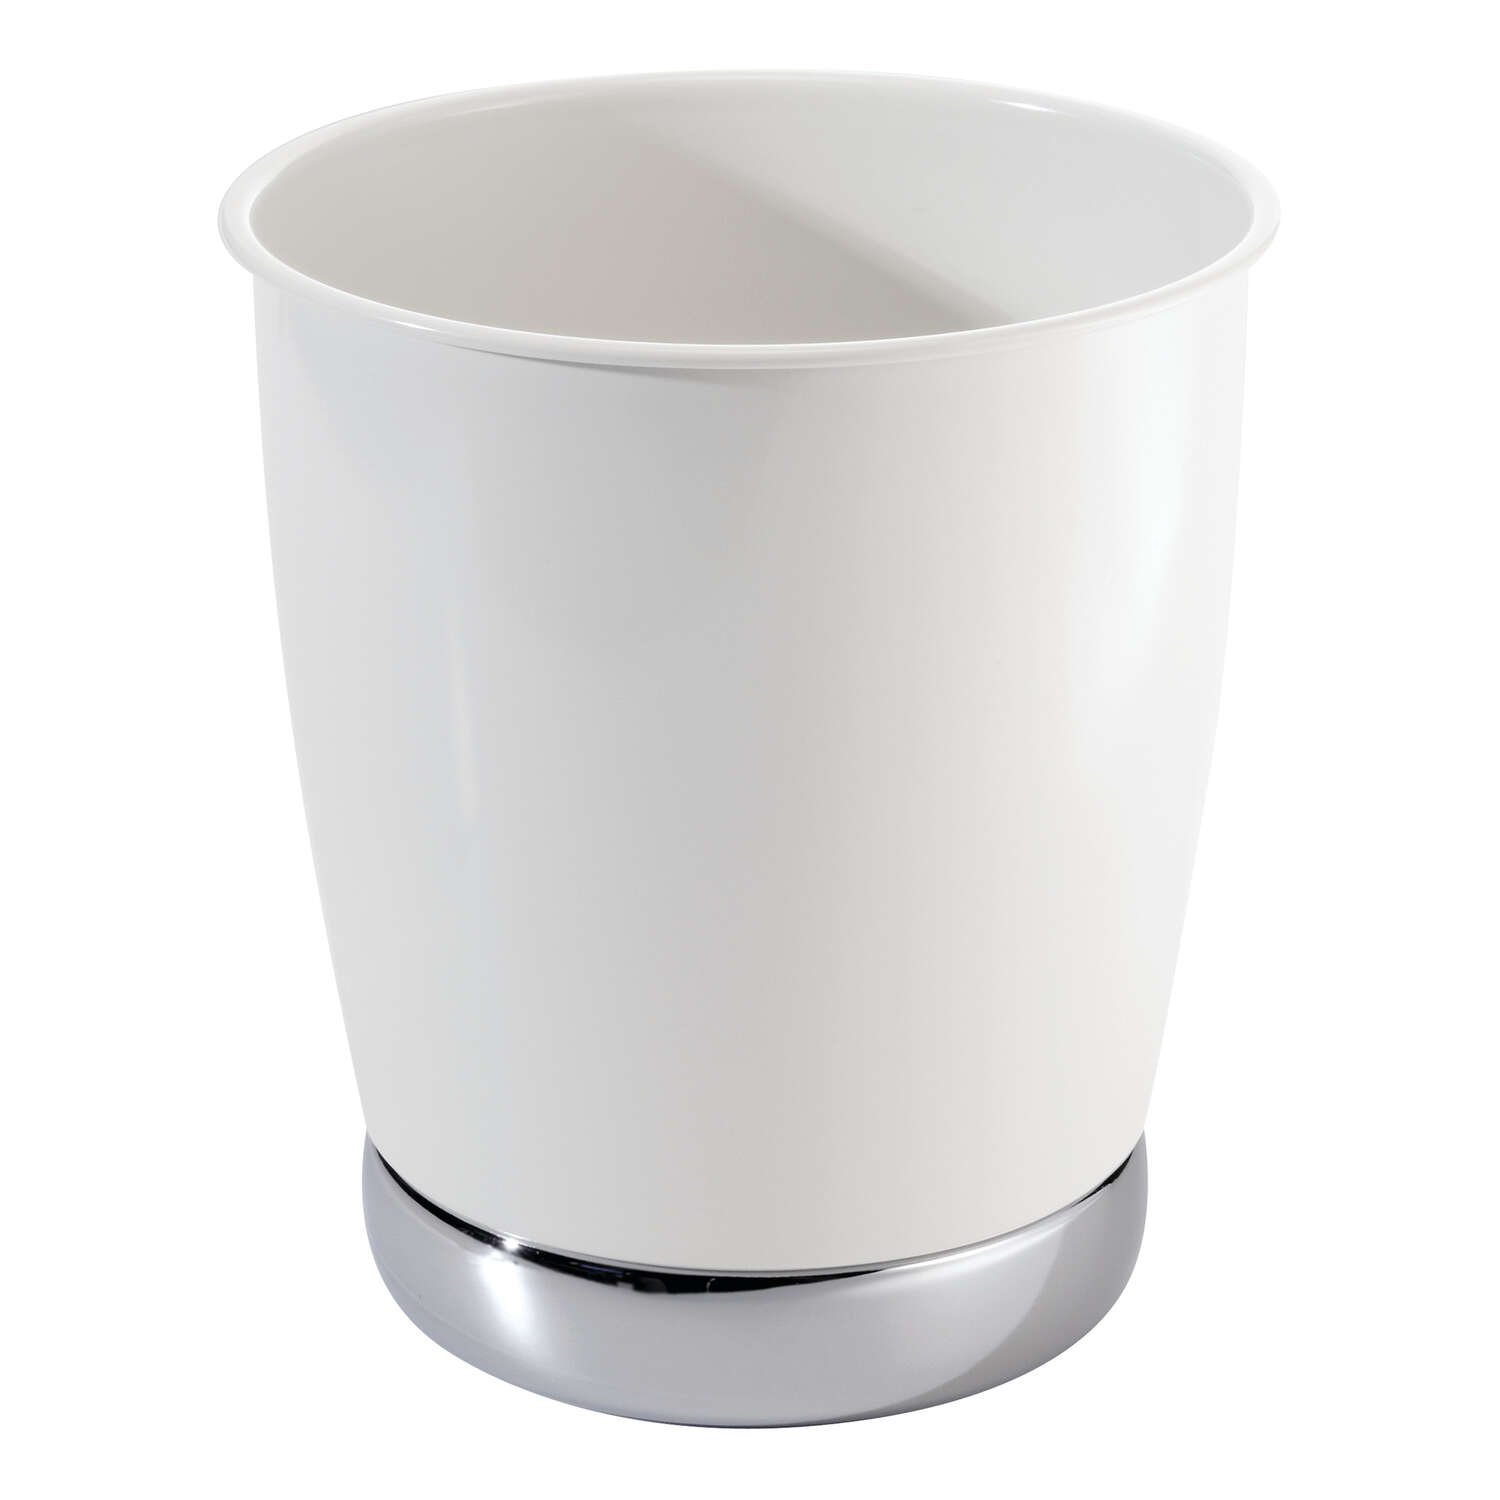 InterDesign York White Steel Classic American Trash Can